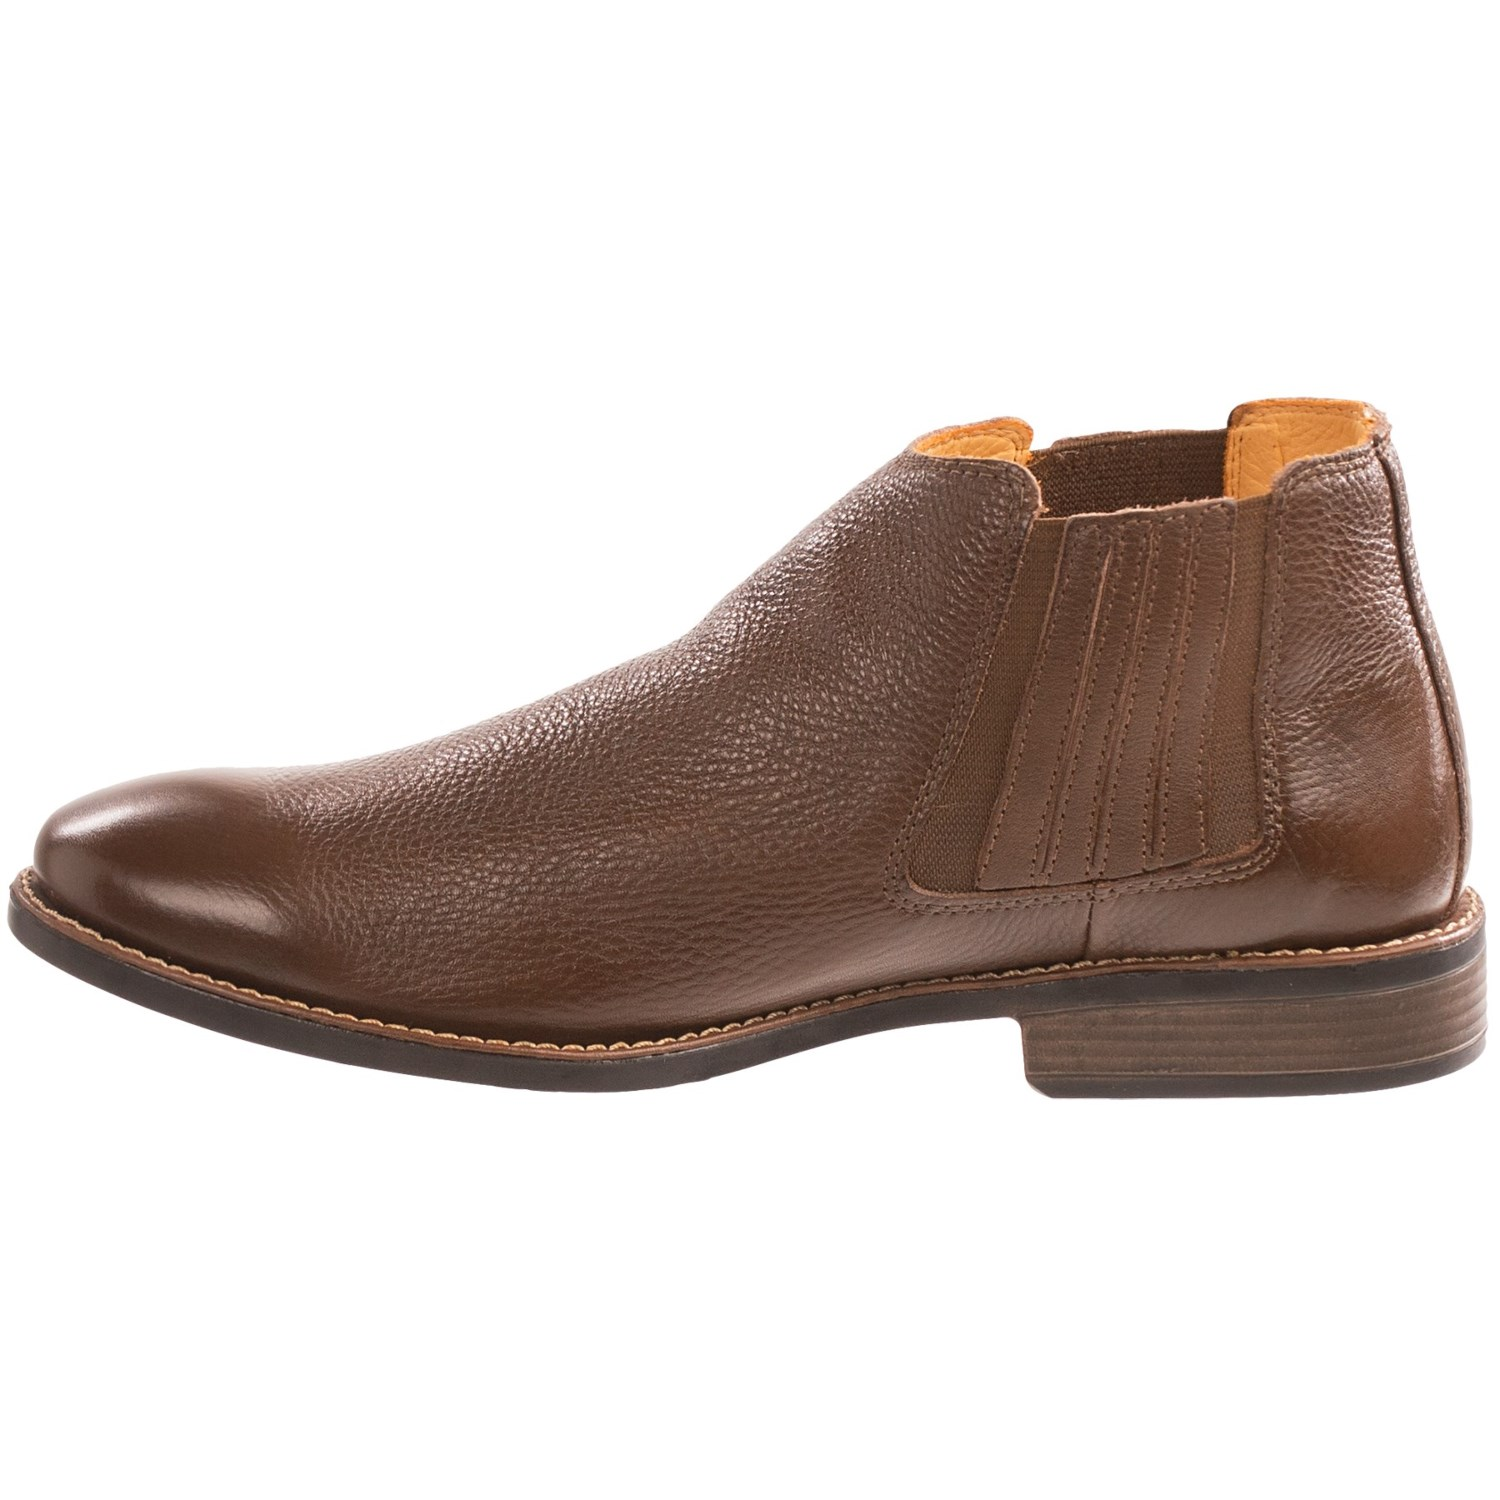 Ankle Boots For Men KU30wfch